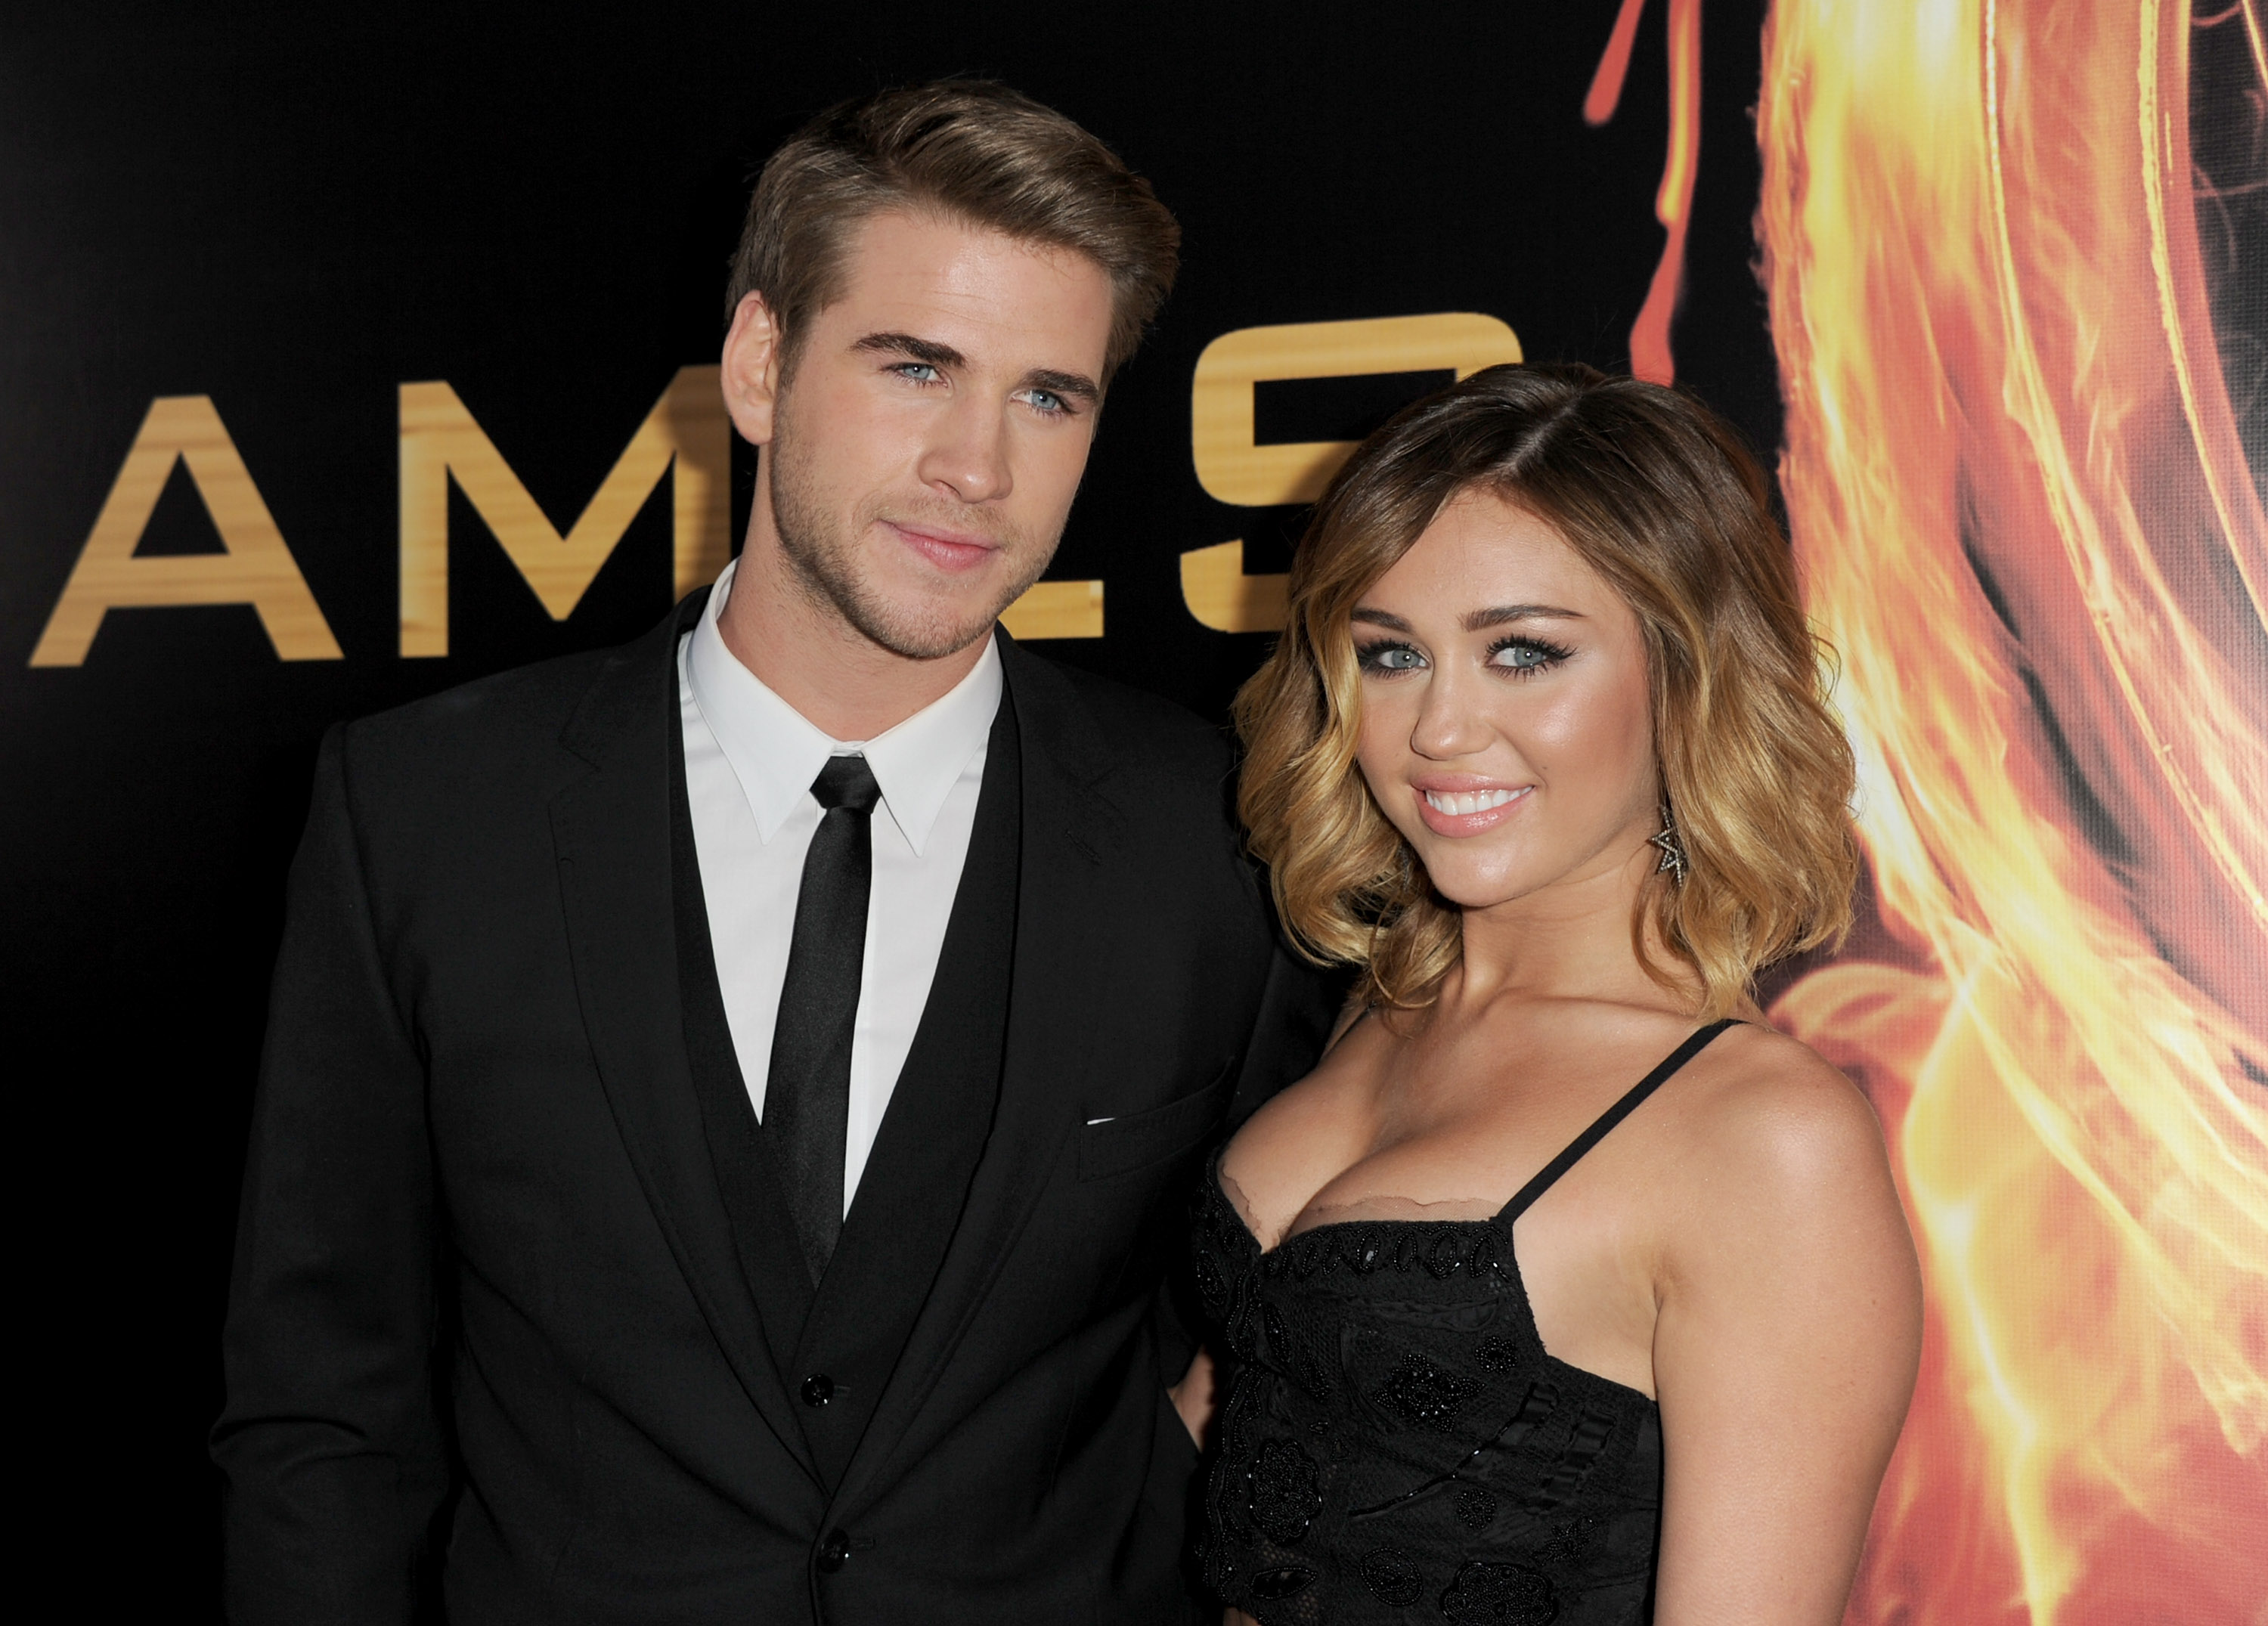 "LOS ANGELES, CA - MARCH 12:  Actor Liam Hemsworth (L) and singer Miley Cyrus arrive at the premiere of Lionsgate's ""The Hunger Games"" at Nokia Theatre L.A. Live on March 12, 2012 in Los Angeles, California.  (Photo by Kevin Winter/Getty Images)"